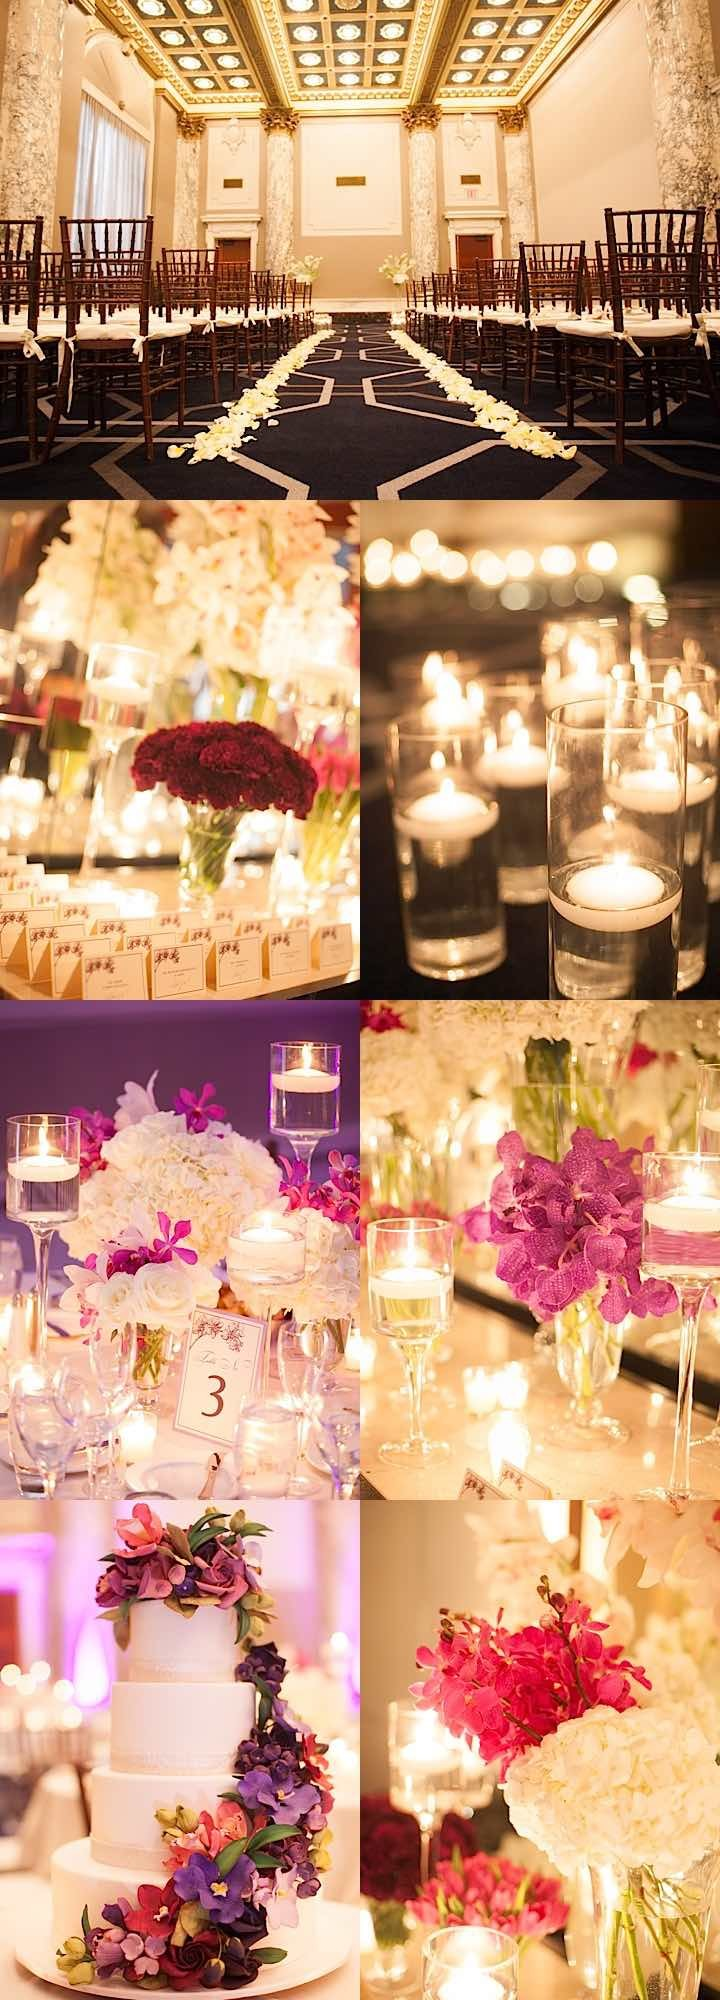 new-york-wedding-collage2-04092015-ky